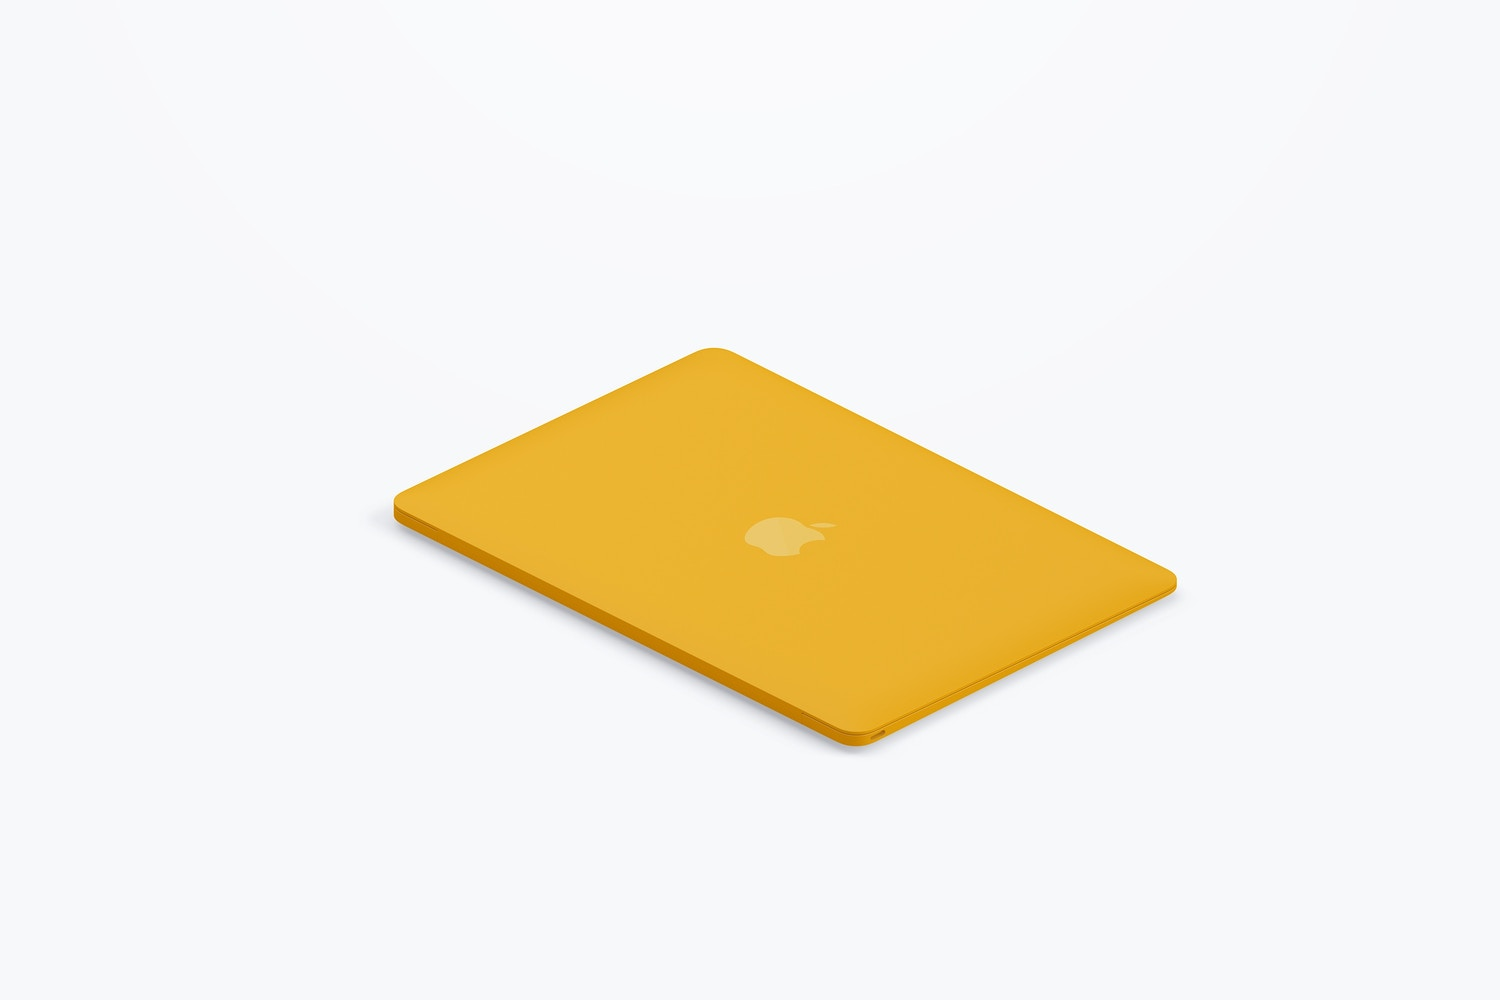 Clay MacBook Mockup, Isometric Right View 03 (4) by Original Mockups on Original Mockups